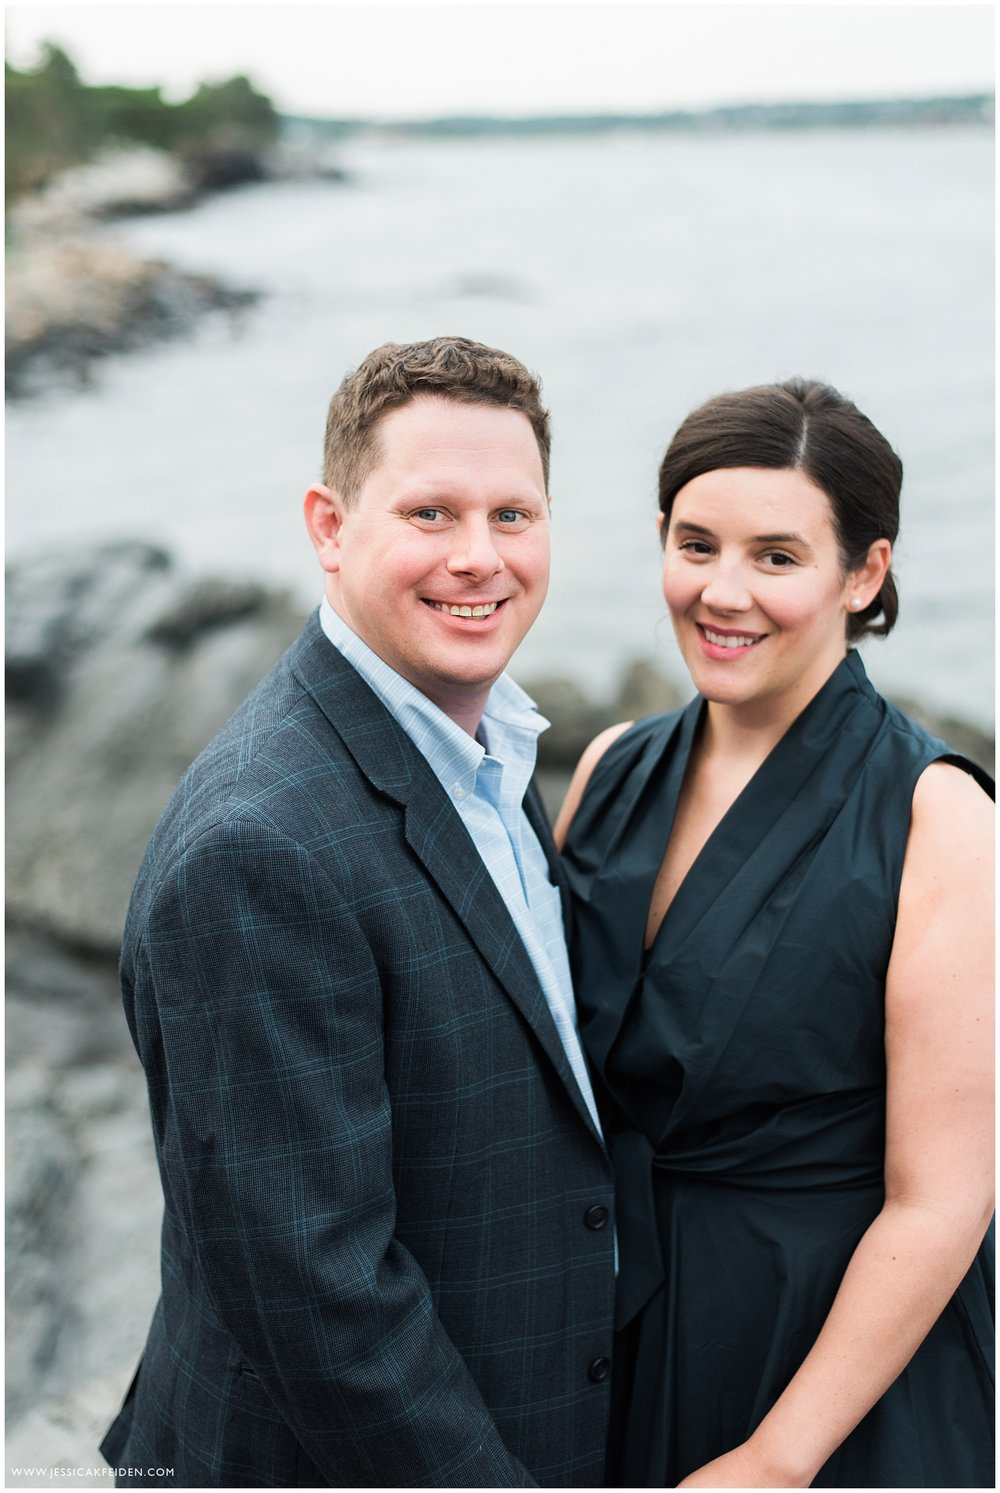 Jessica K Feiden Photography_Castle Hill Lighthouse Newport Engagement Session Photographer_0004.jpg